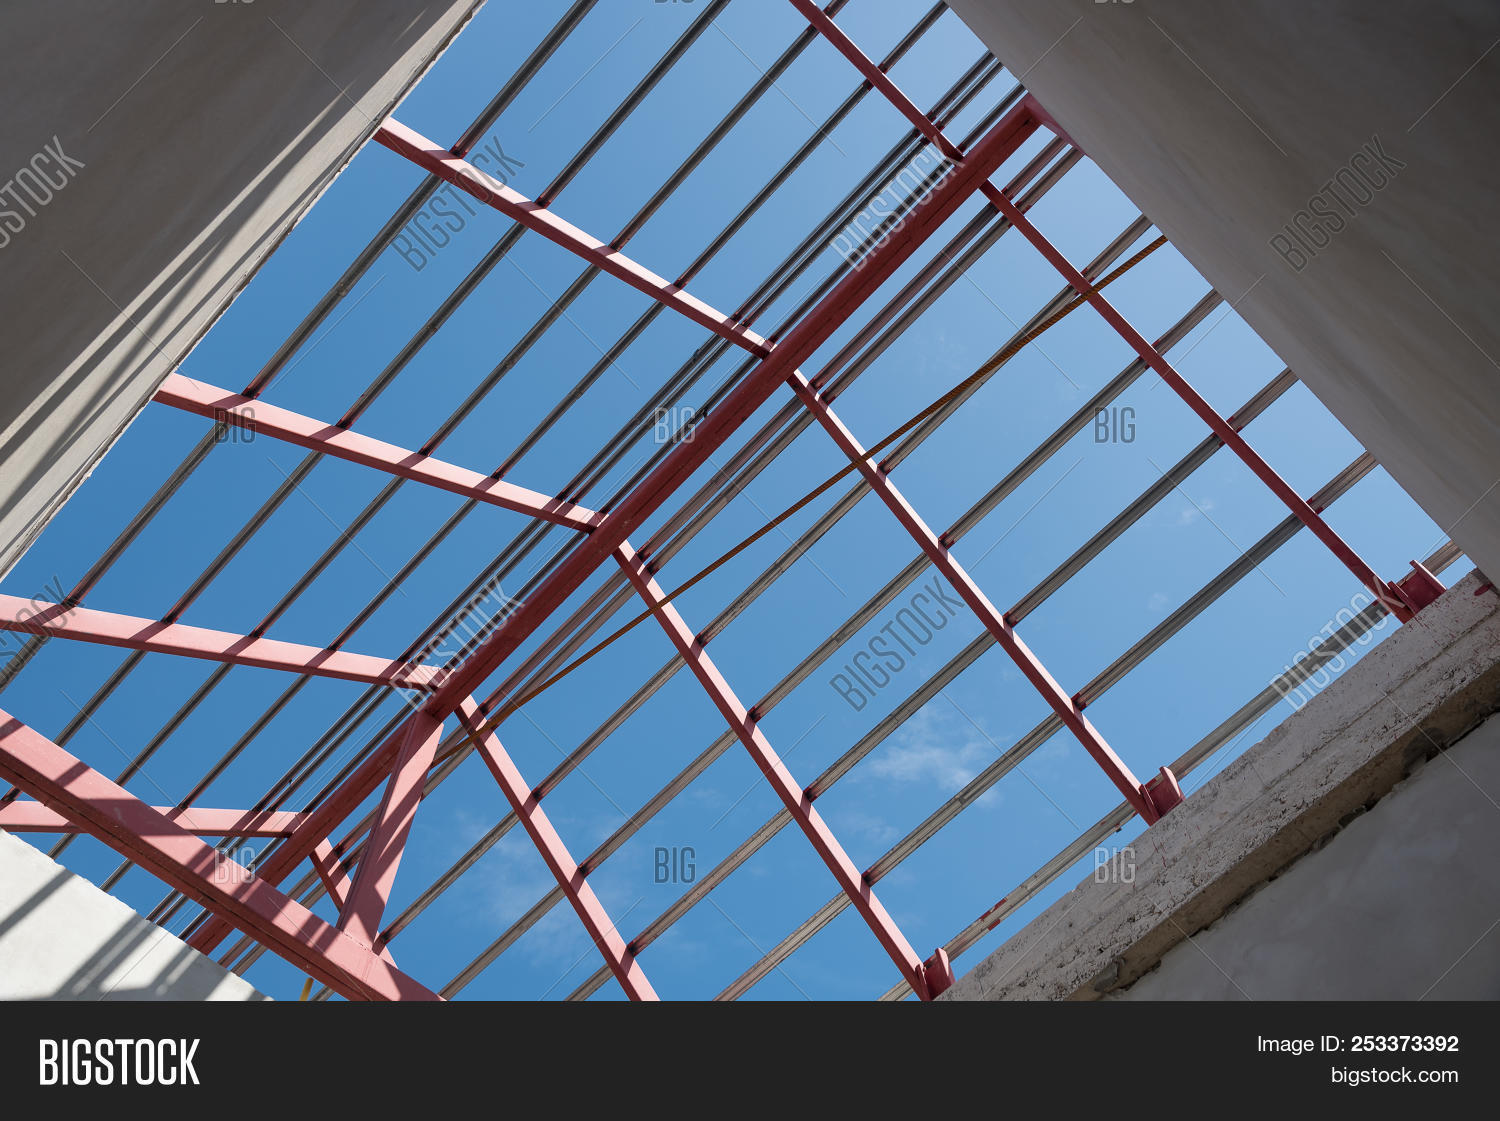 Up View Of Structural Steel Beam On Roof Of Building